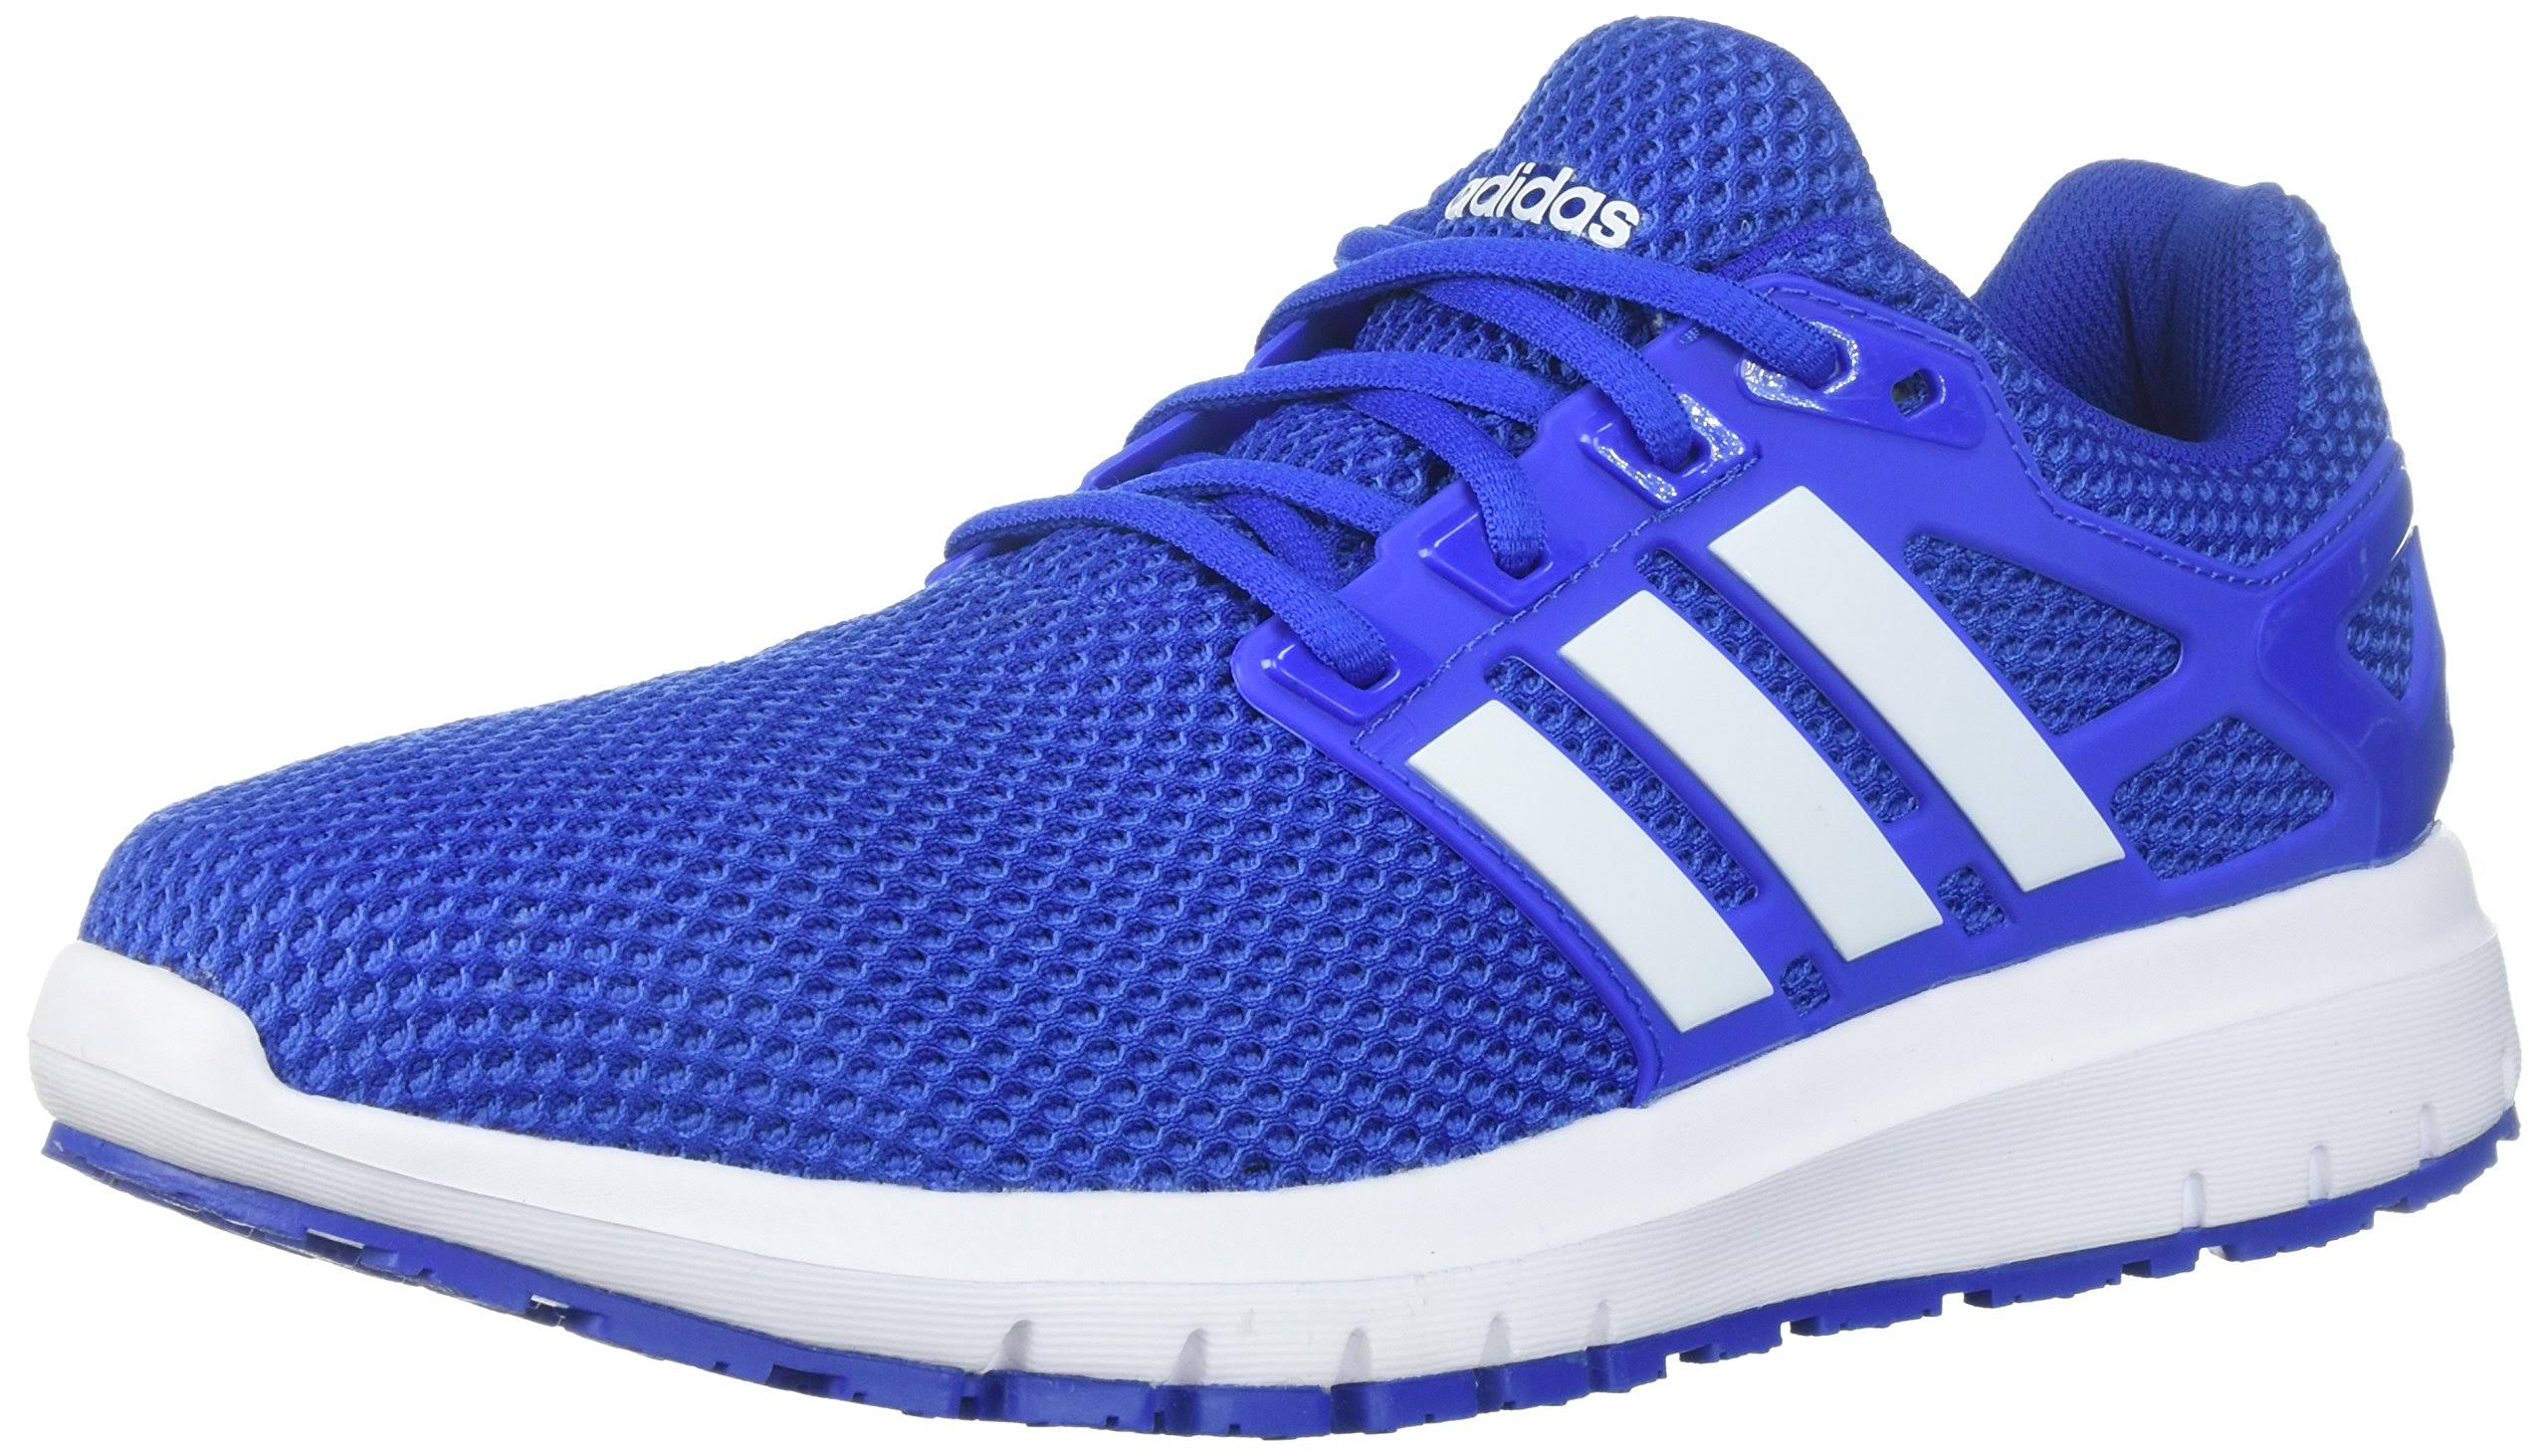 Hombre Cloud Running Real Adidas 2 10 Medio Blanco Para De Energy Zapatillas 1 cqYFUCY